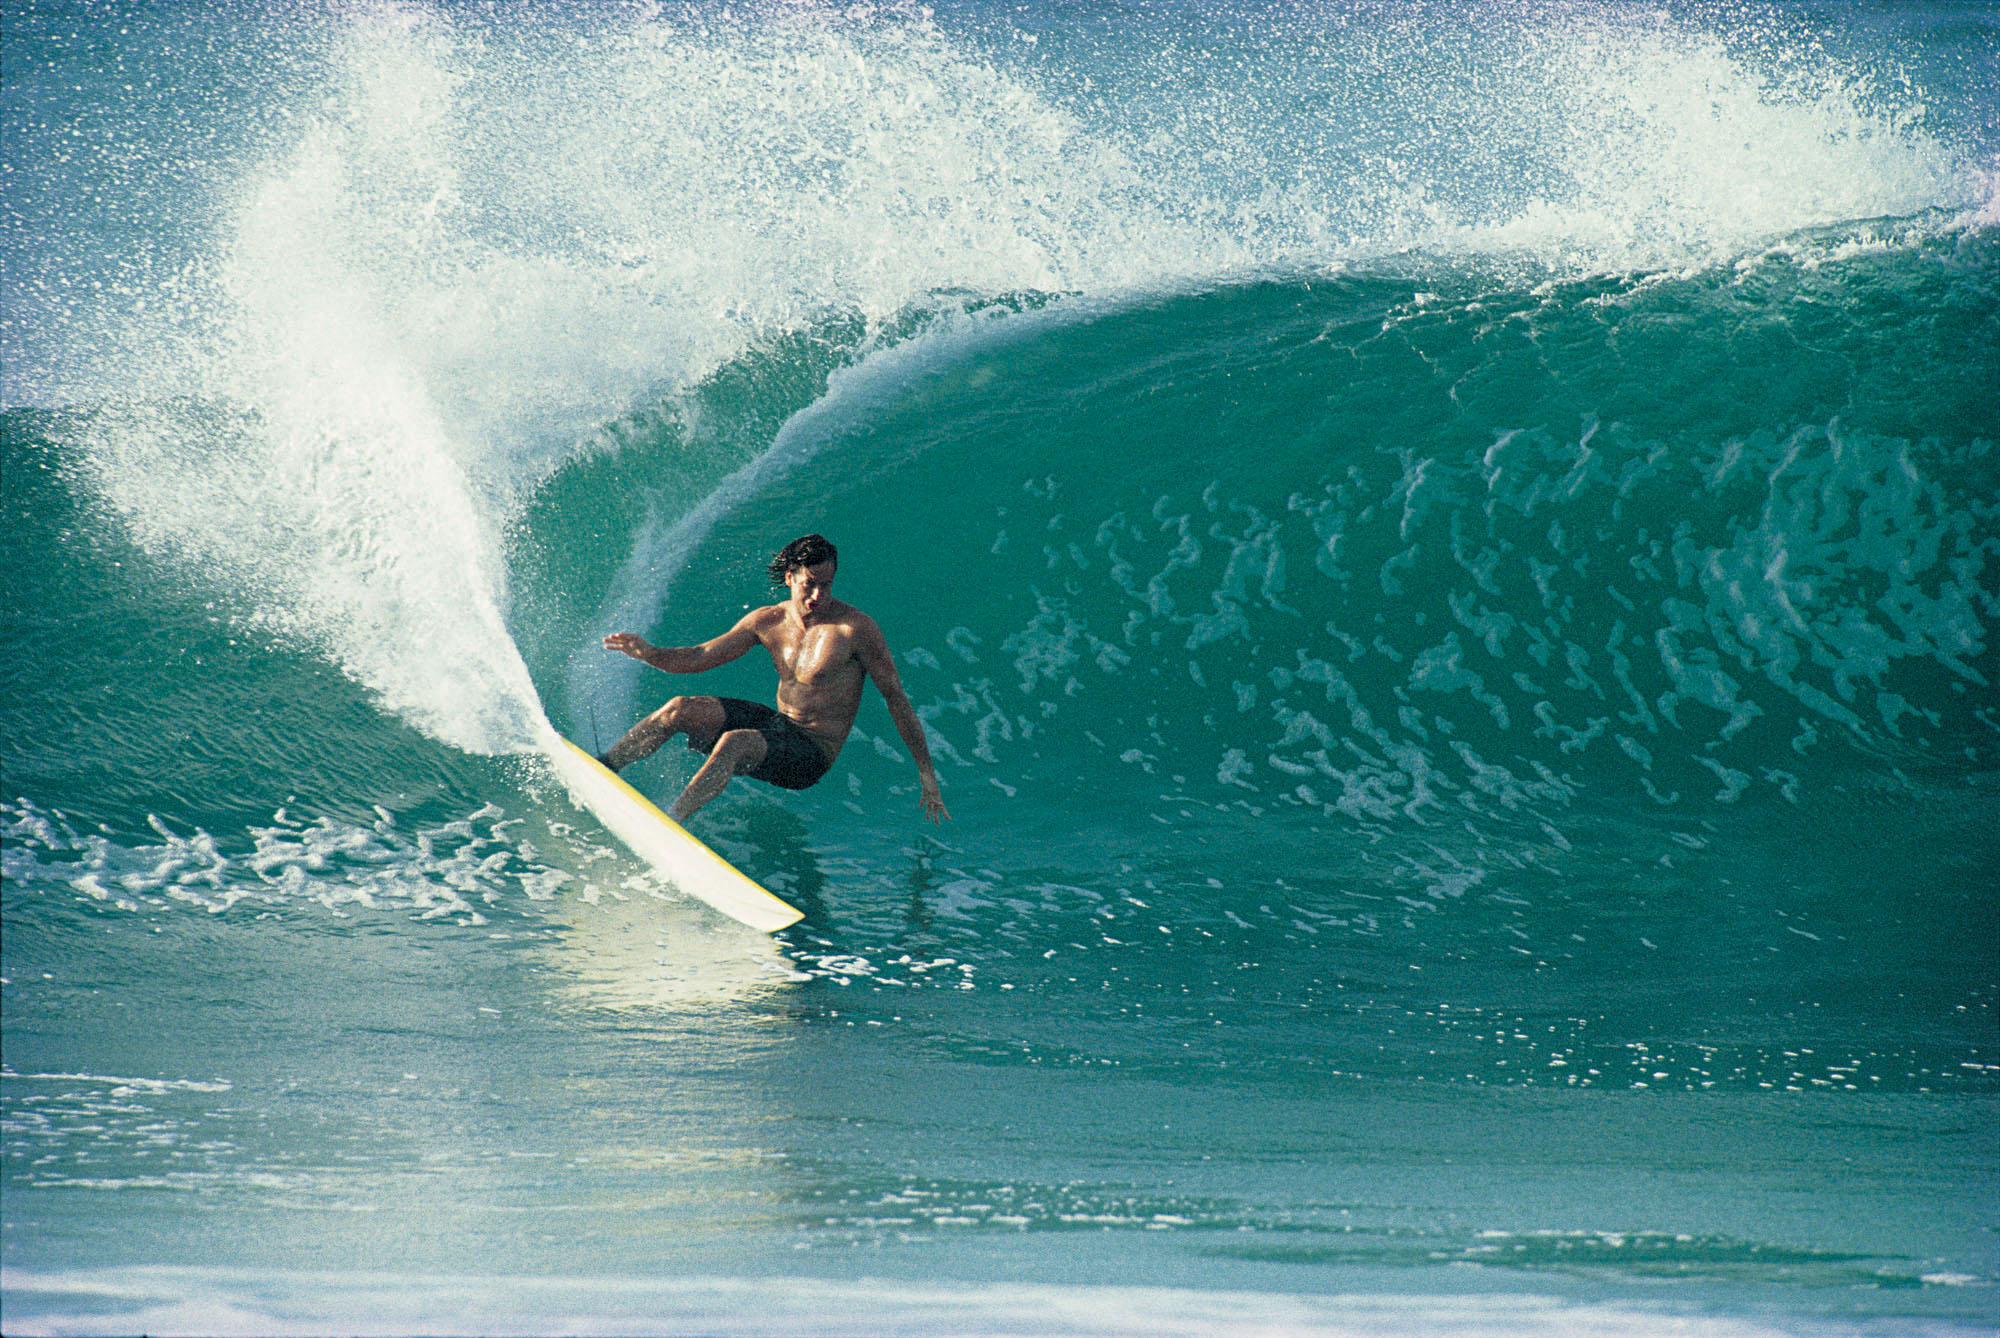 tom-curren-cutback.jpg